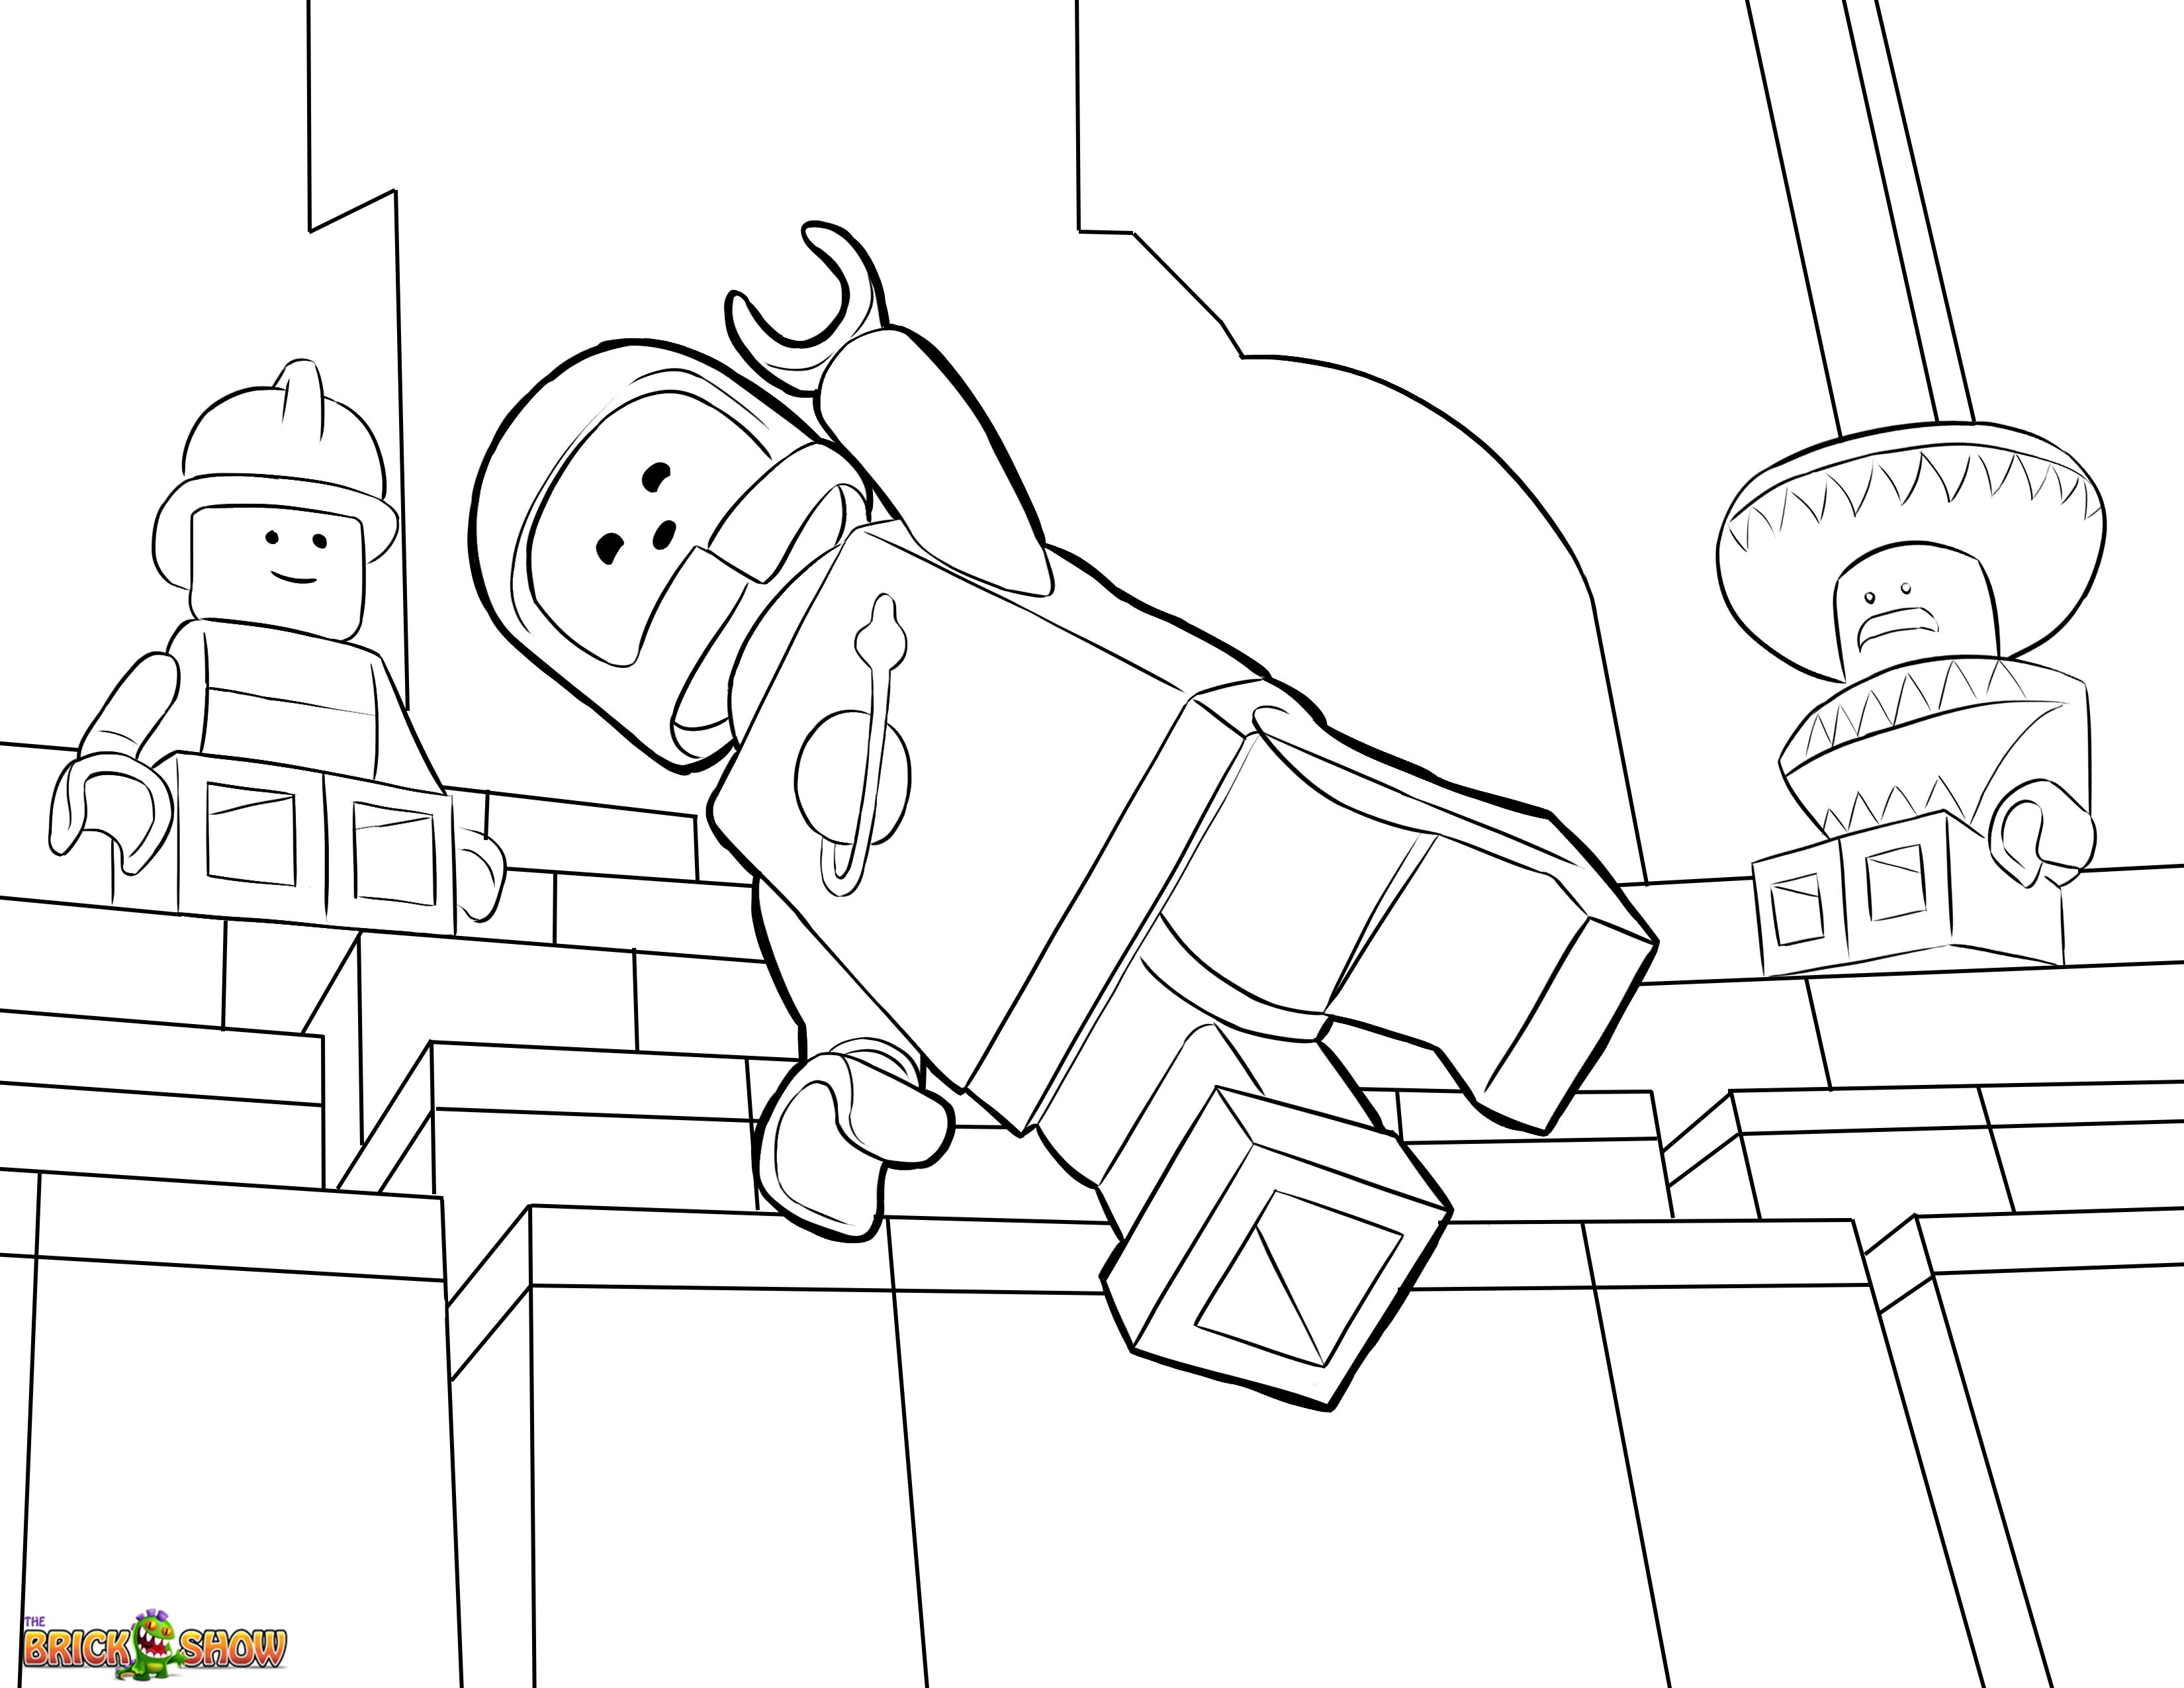 3300x2550 Printable Free Lego Space New Lego Coloring Pages For Kids